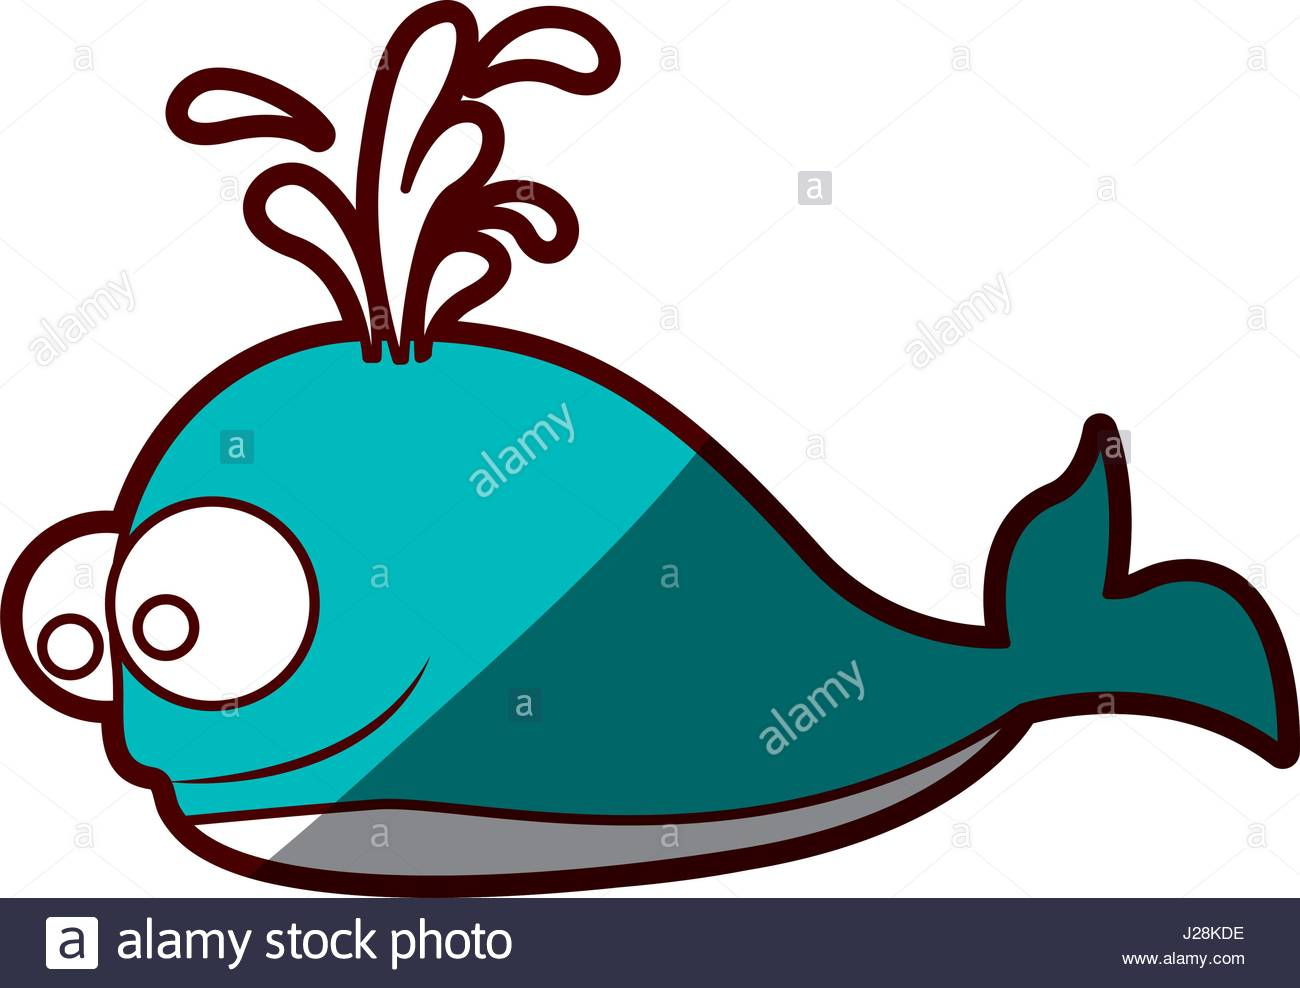 1300x988 Silhouette Color Blue Of Whale And Water Jet Stock Vector Art